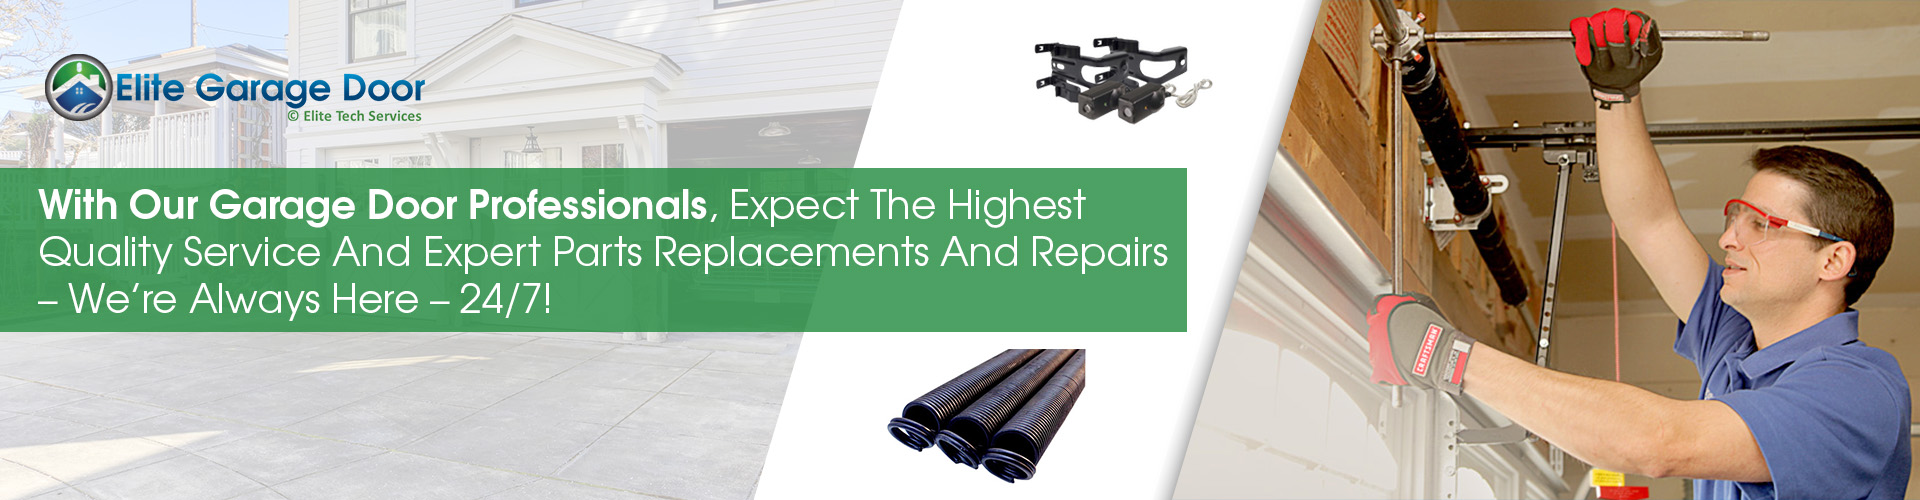 Garage Door Drums Replacement - Elite Tech Services, LLC